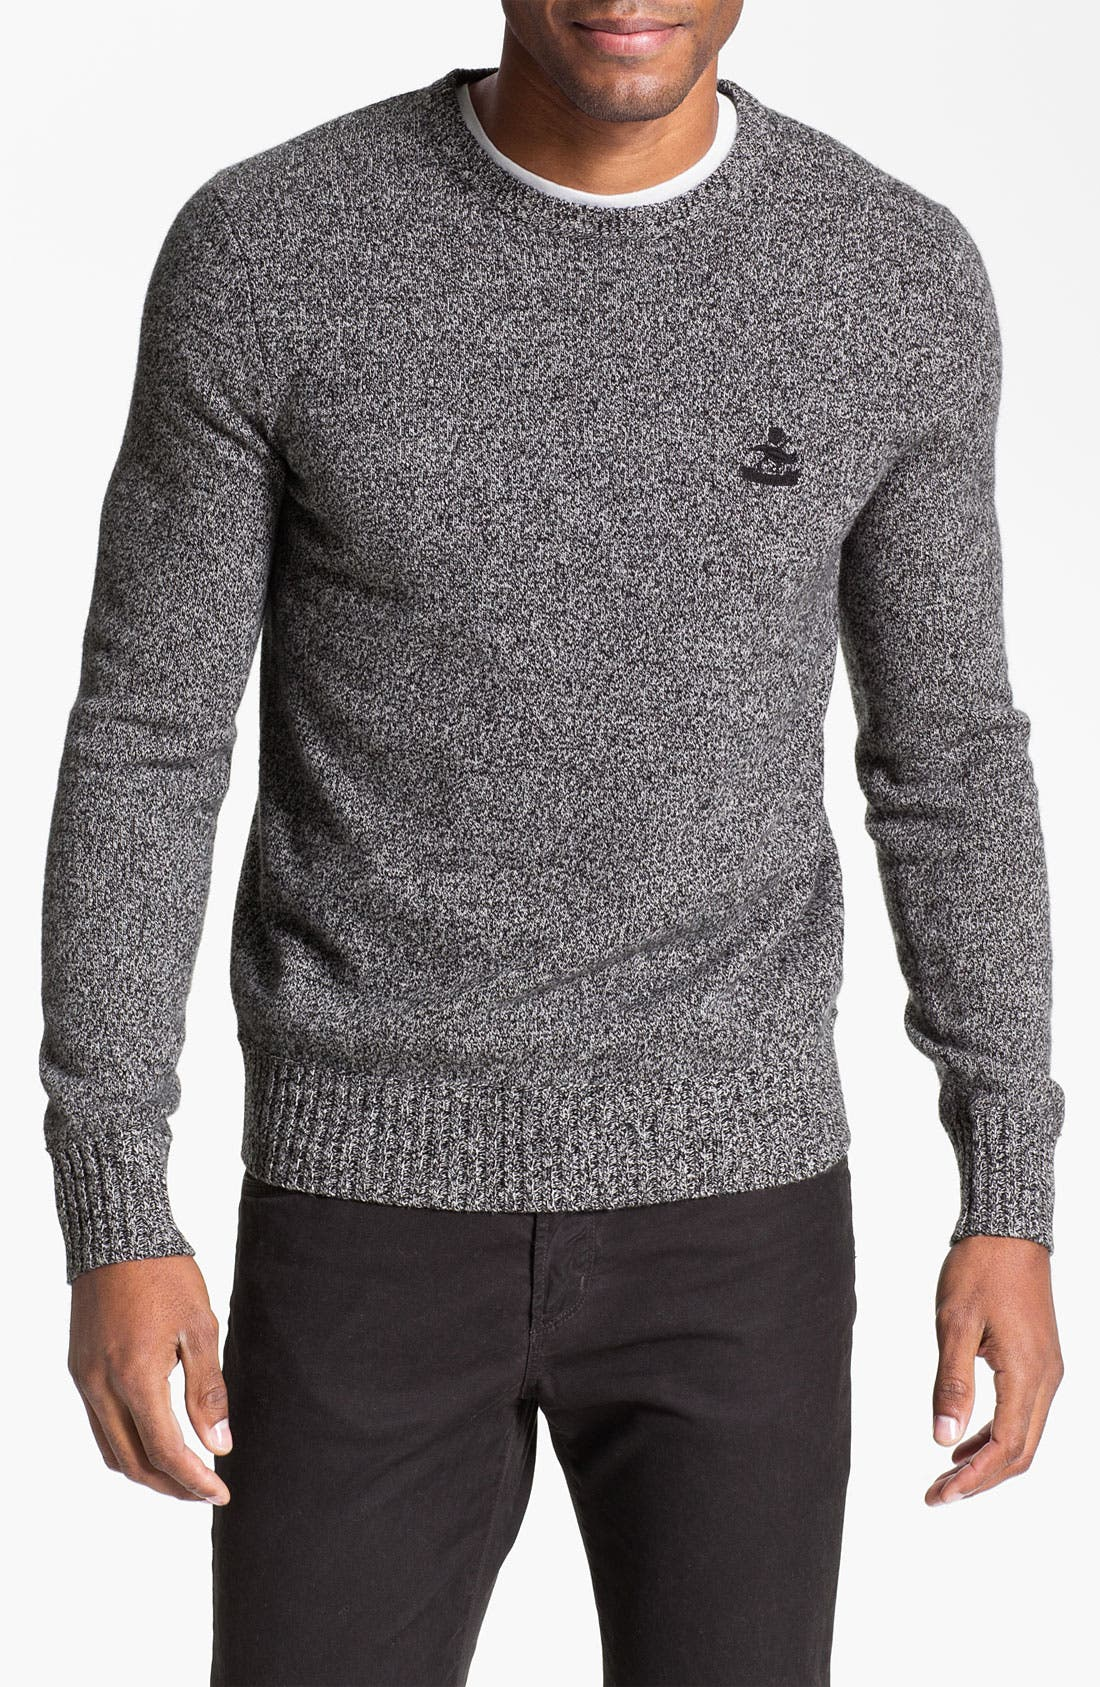 Alternate Image 1 Selected - Façonnable Wool Crewneck Sweater